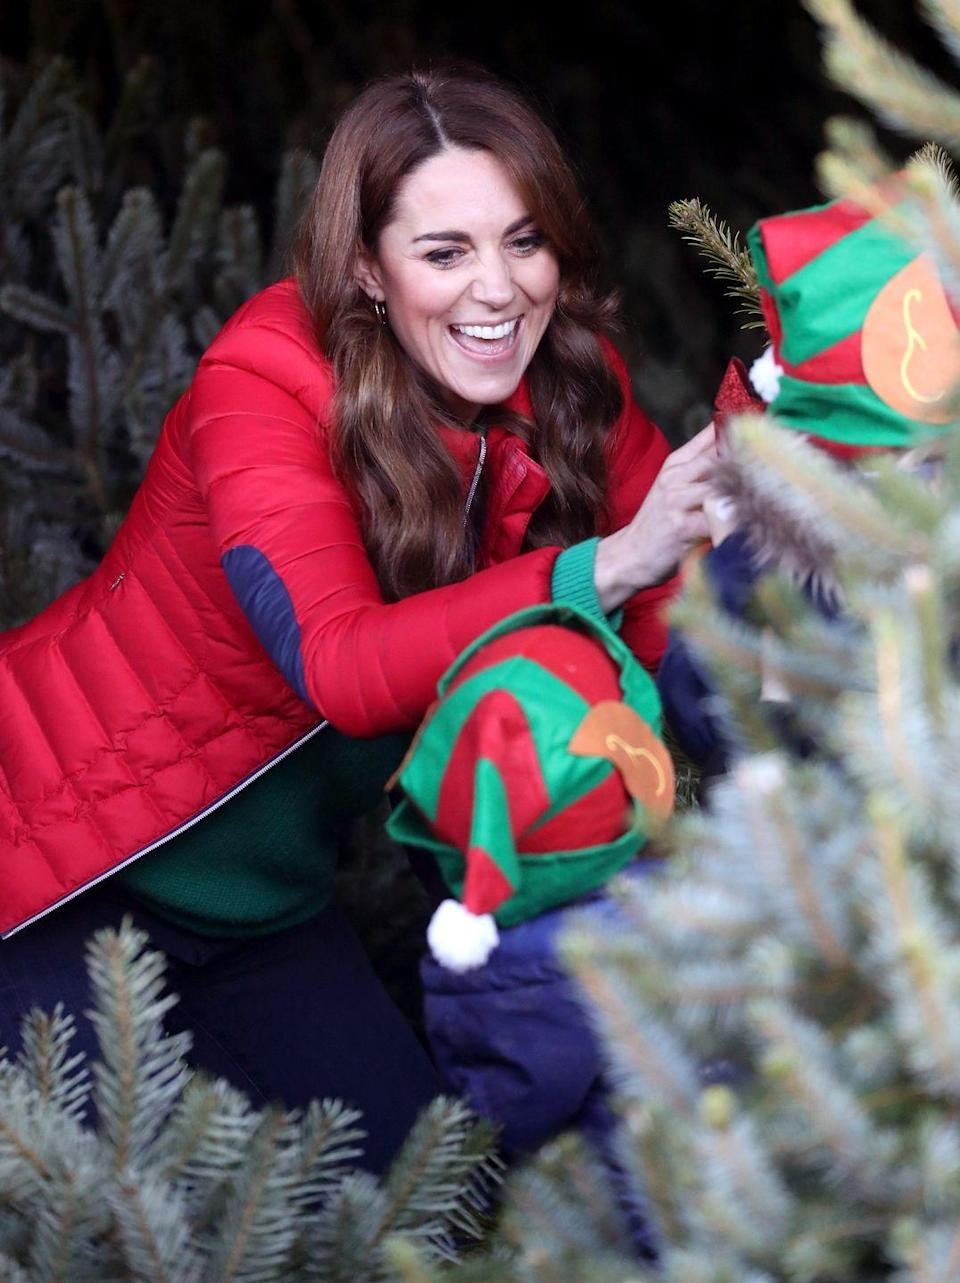 <p>The royal family follows the German custom of opening presents on Christmas Eve, which means no gifts on Christmas day. Instead, the family attends the aforementioned church service at St. Mary Magdalene Chapel on the 25th followed by Christmas lunch. </p>